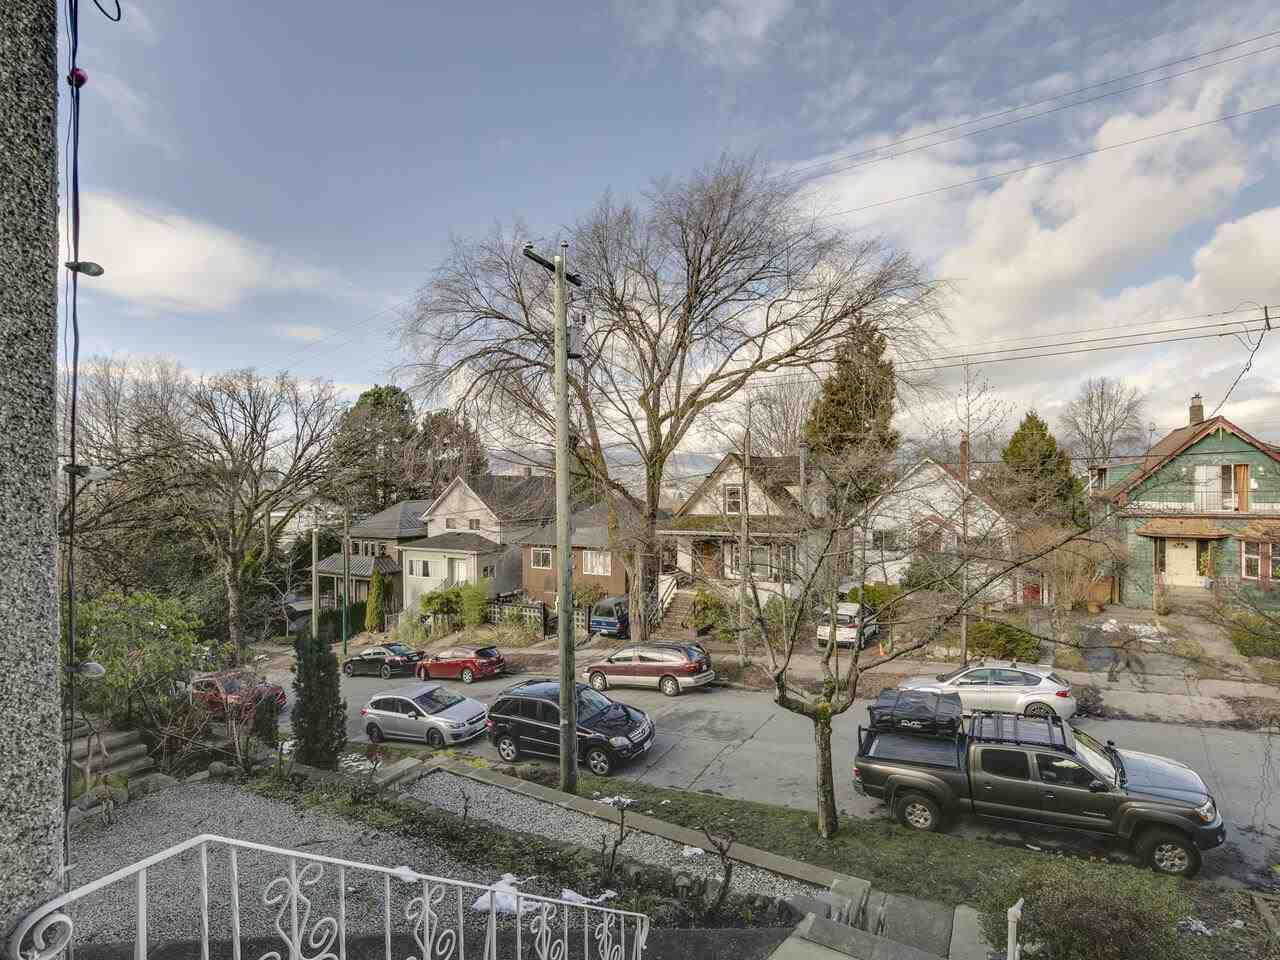 """Photo 4: Photos: 1550 GRANT Street in Vancouver: Grandview Woodland House for sale in """"GRANVIEW"""" (Vancouver East)  : MLS®# R2539844"""